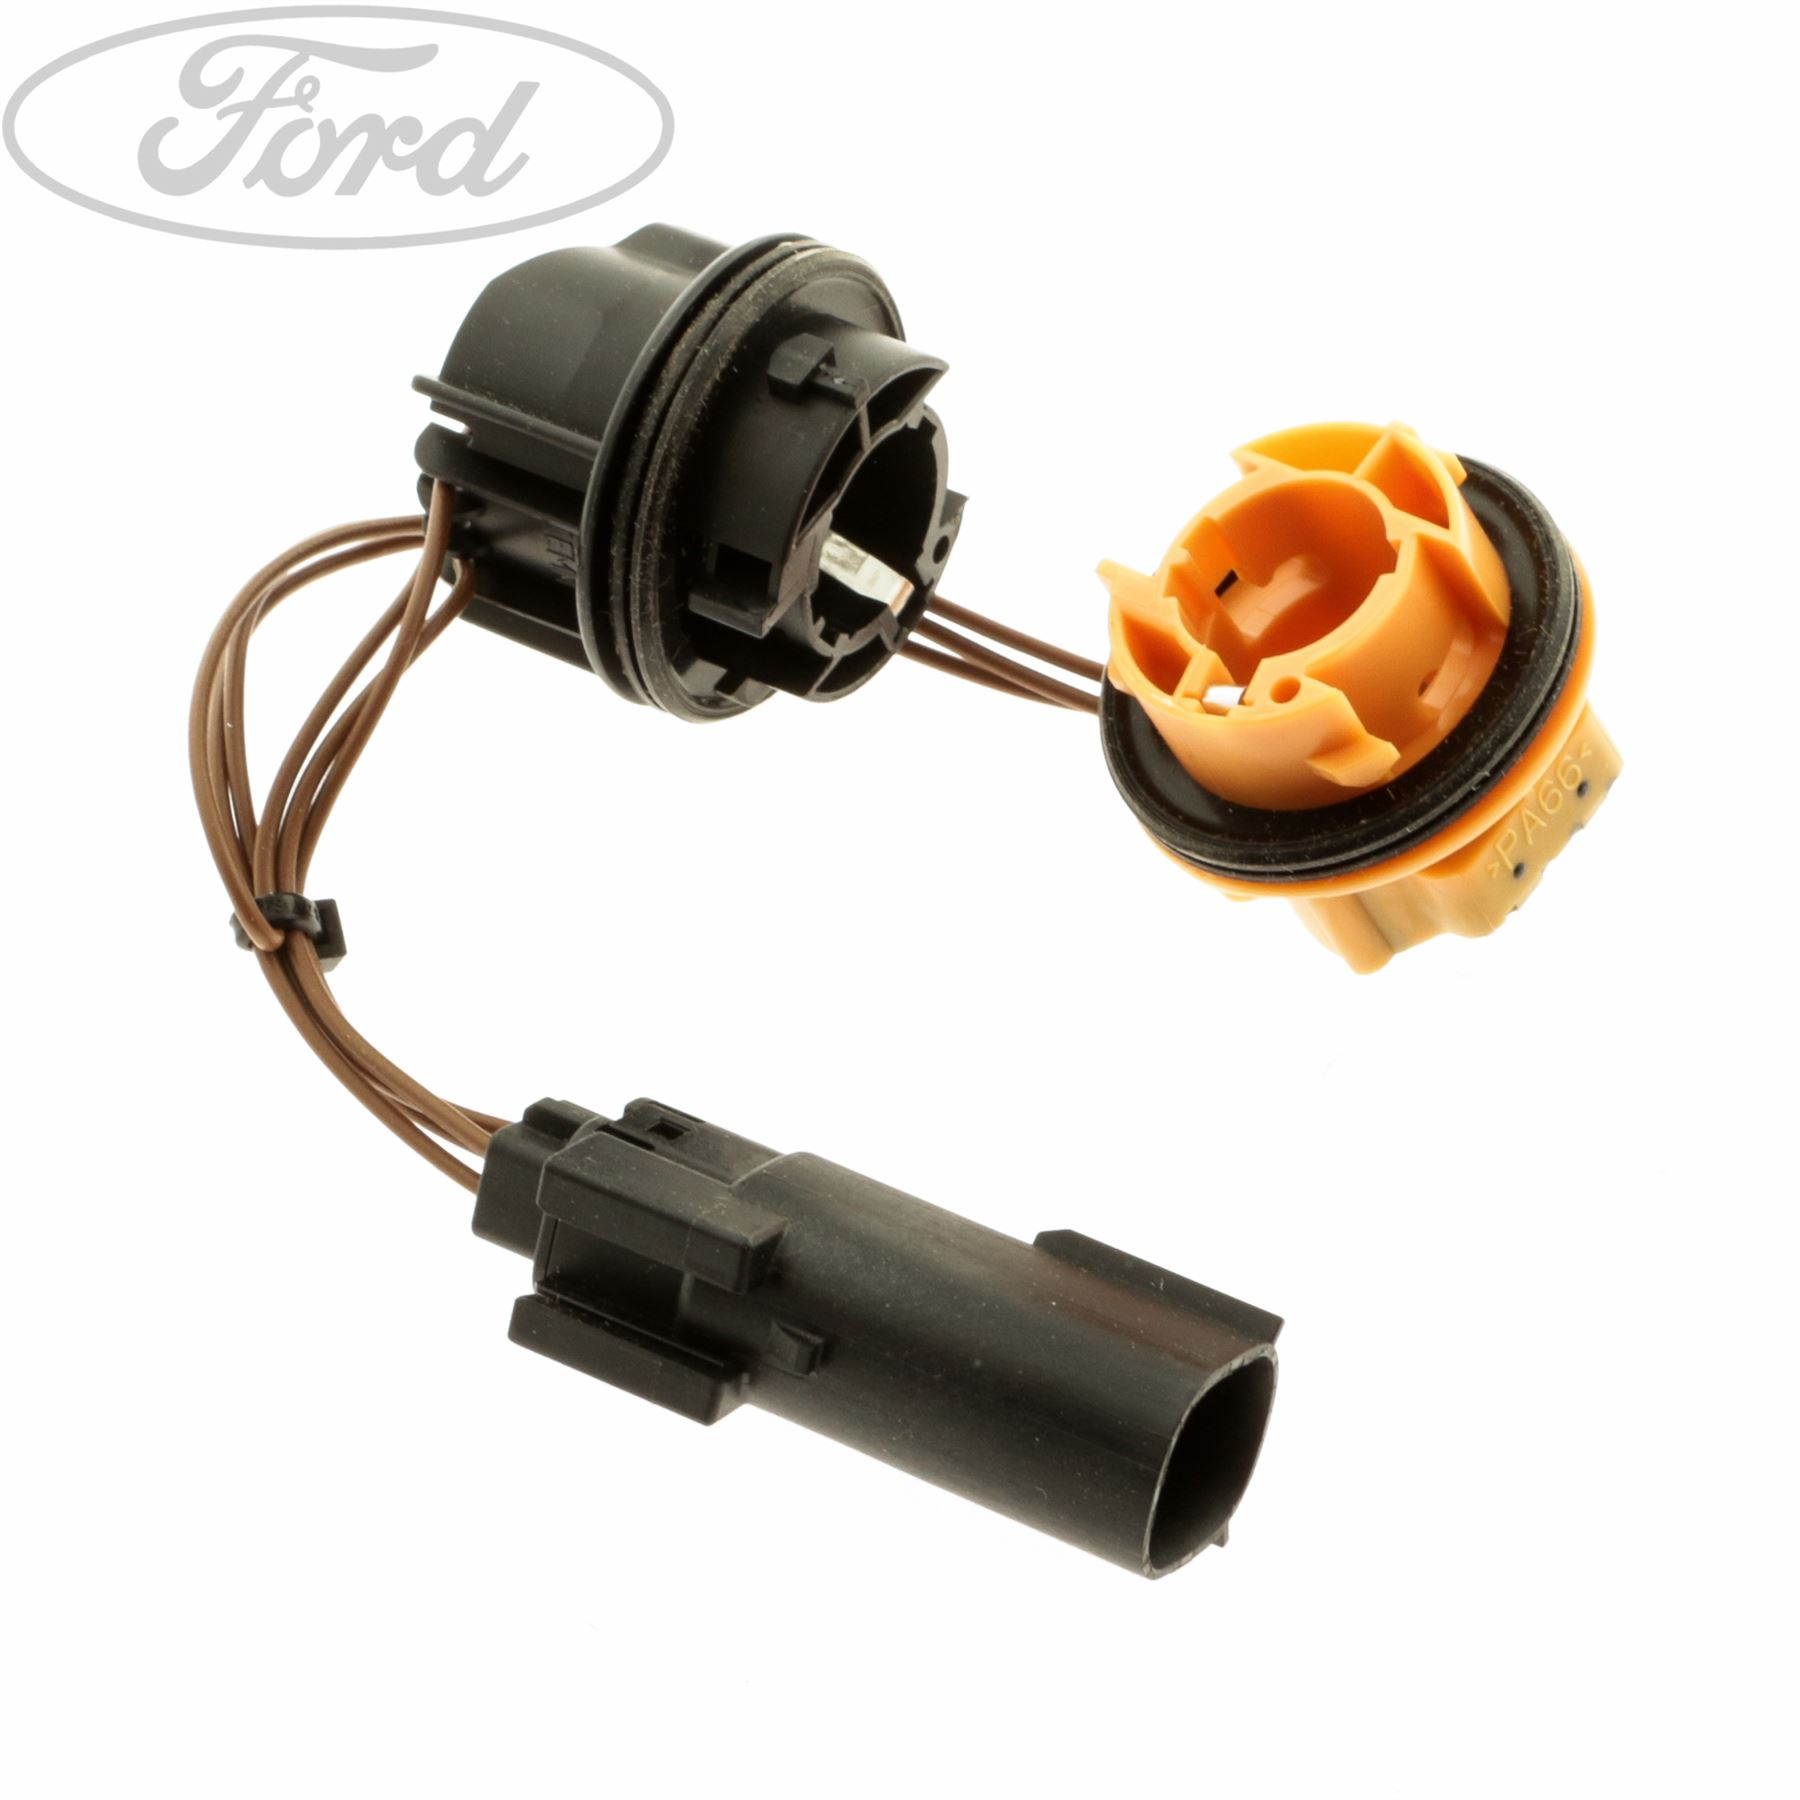 Genuine Ford Kuga Mk2 Rear Outer Light Wiring Harness Loom Socket Model A Image Is Loading